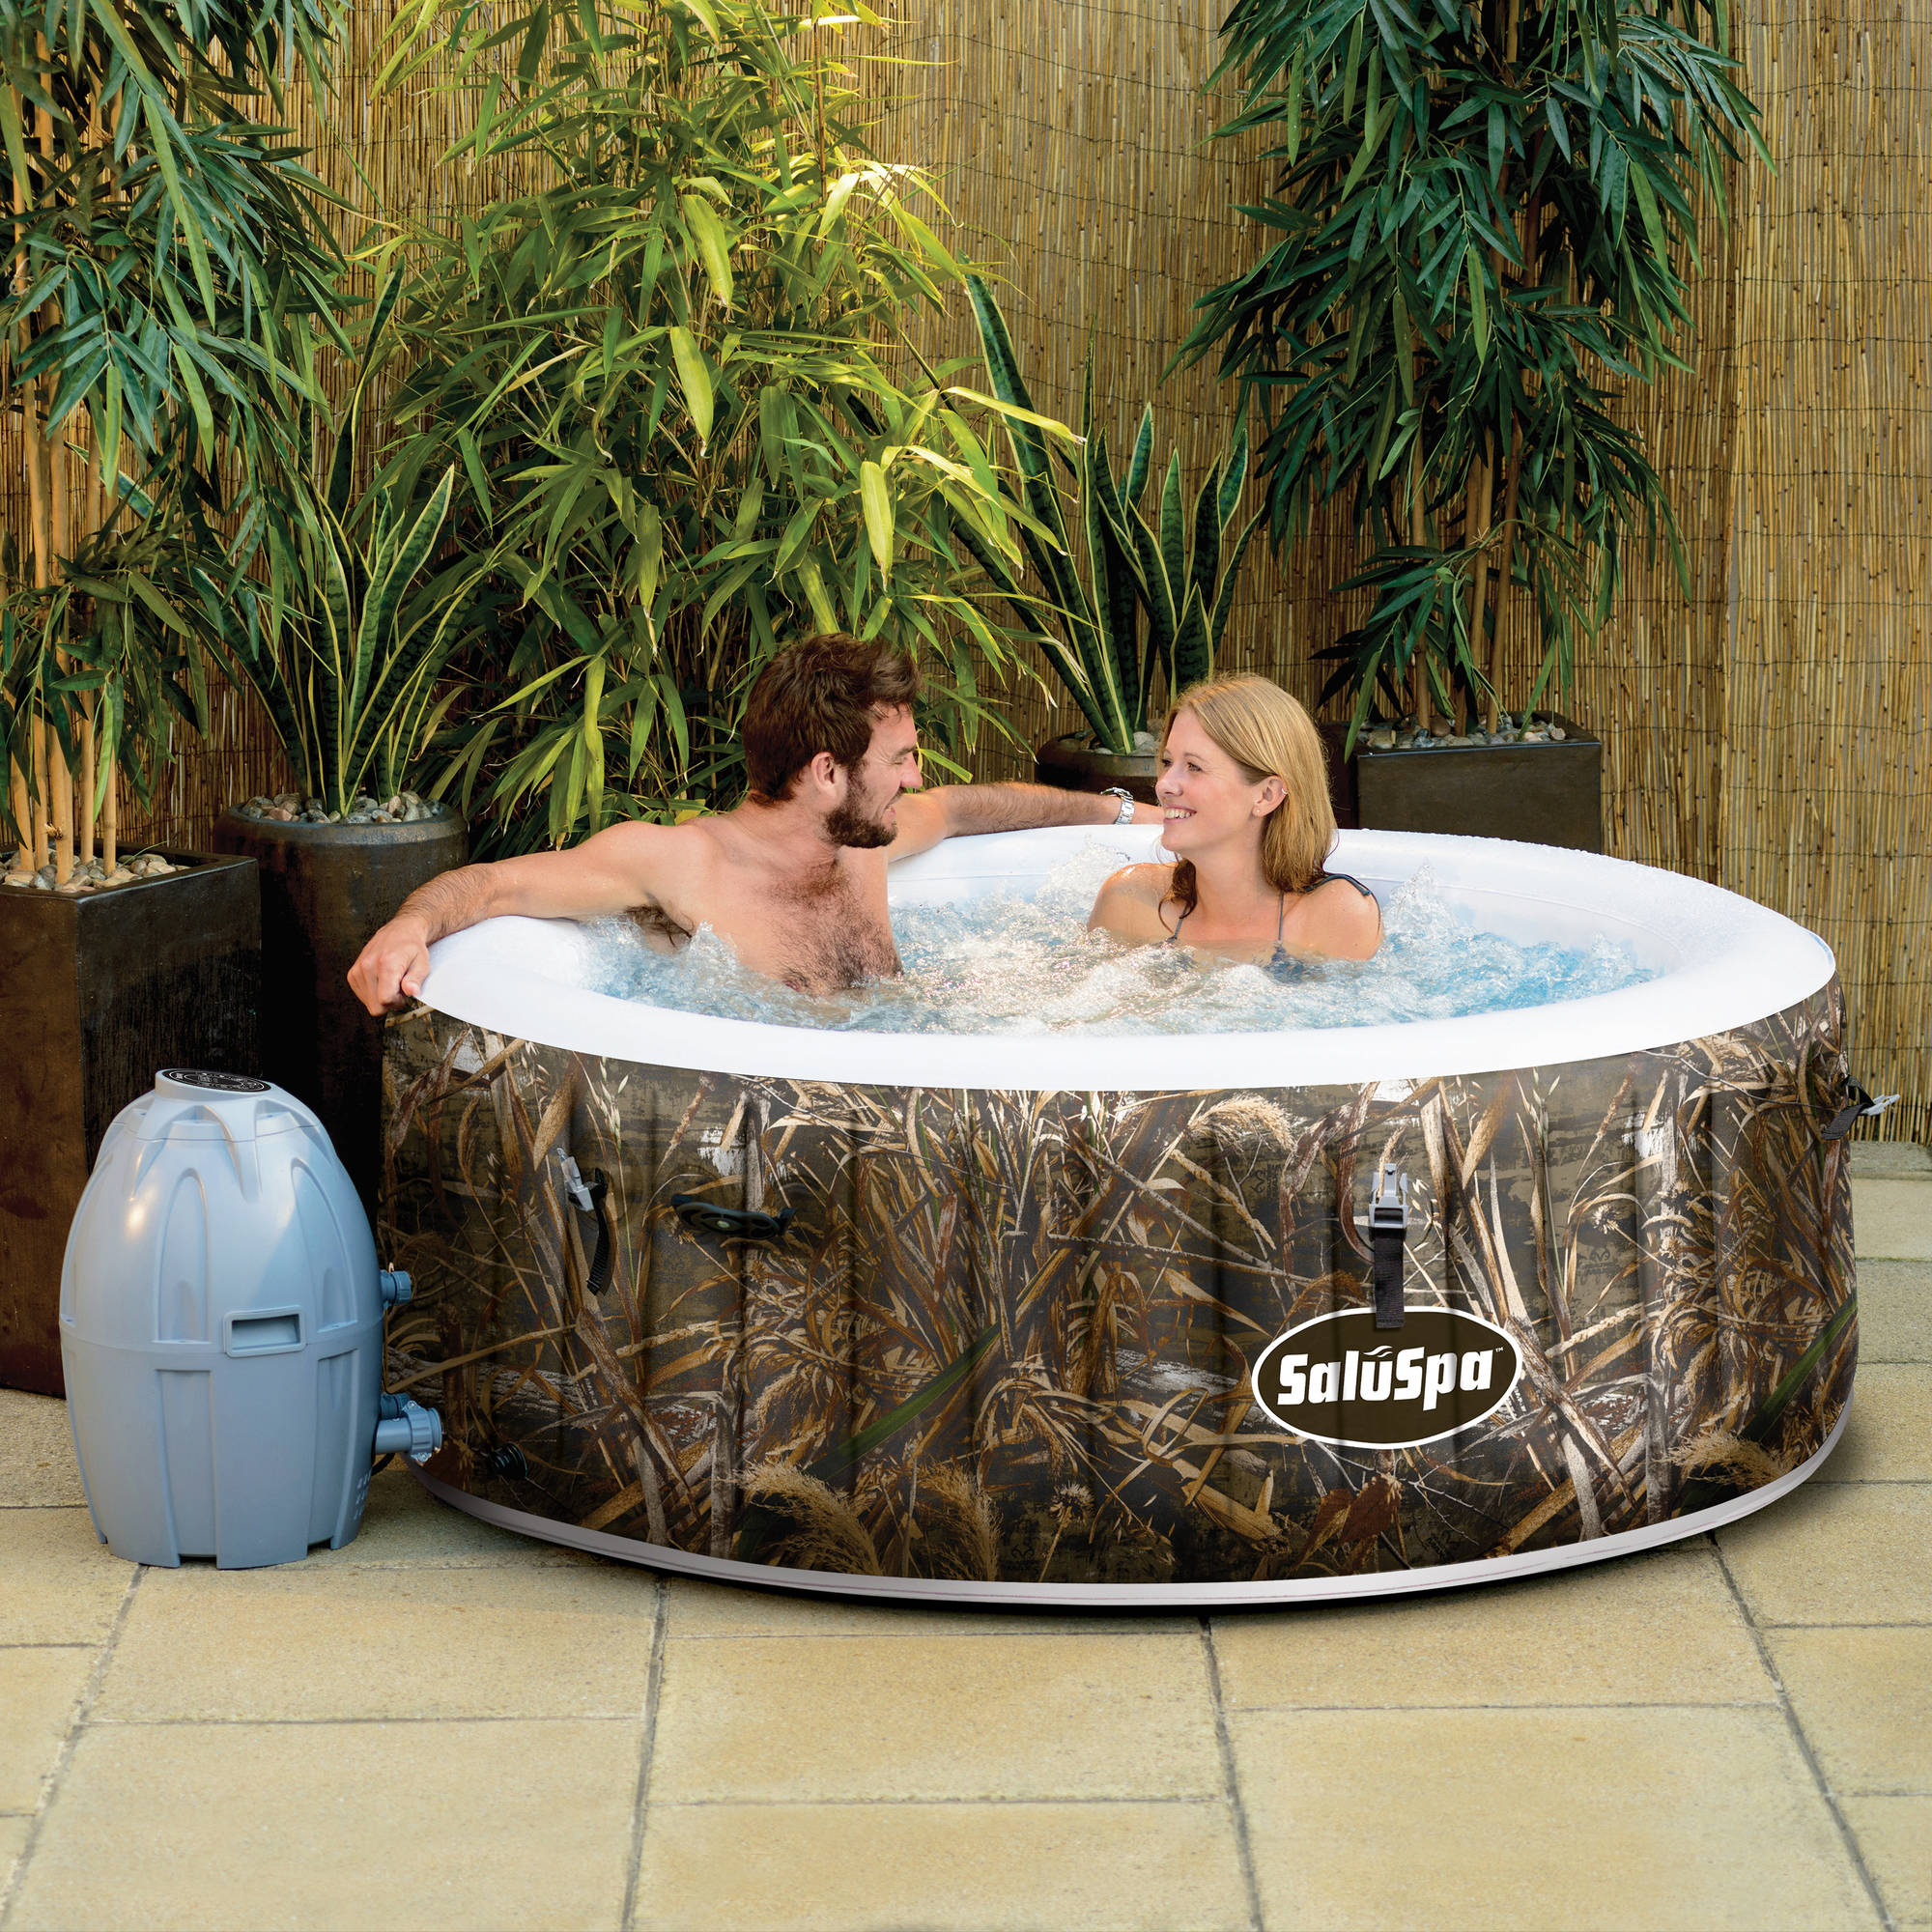 SaluSpa Realtree MAX5 AirJet 4Person Portable Inflatable Hot Tub